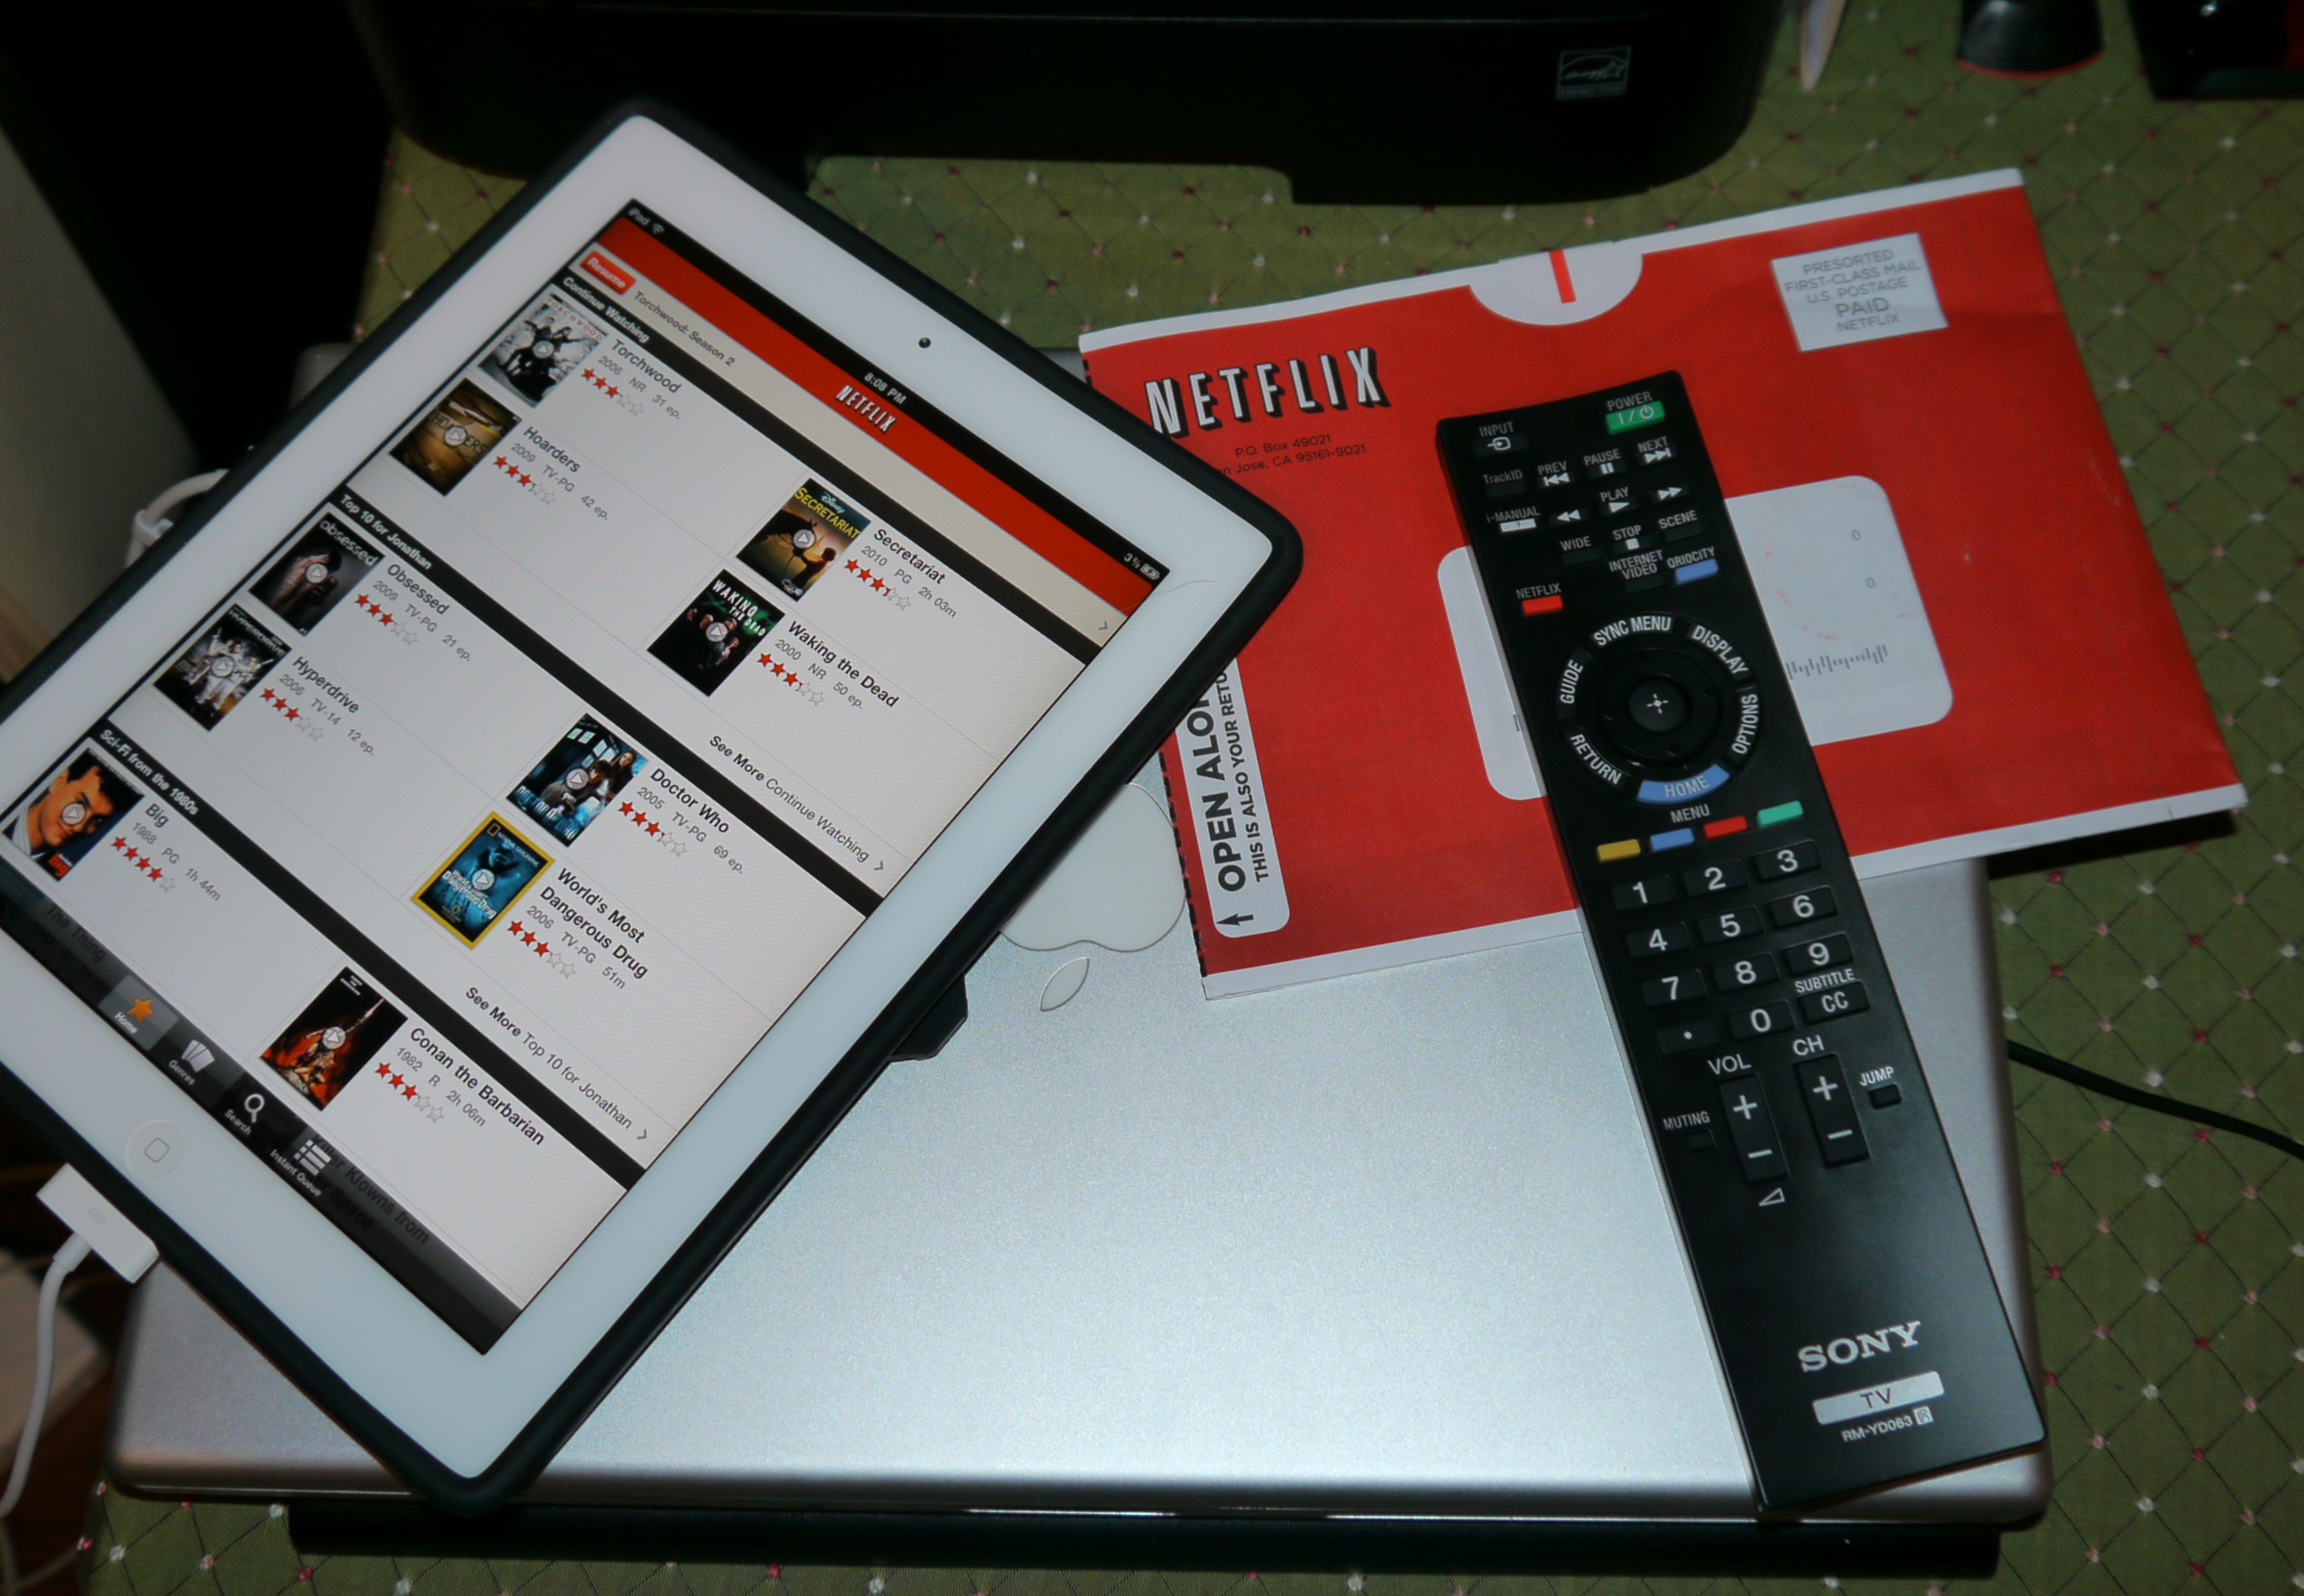 Daily Dose: Netflix dvd service goes out of business, well, kinda…